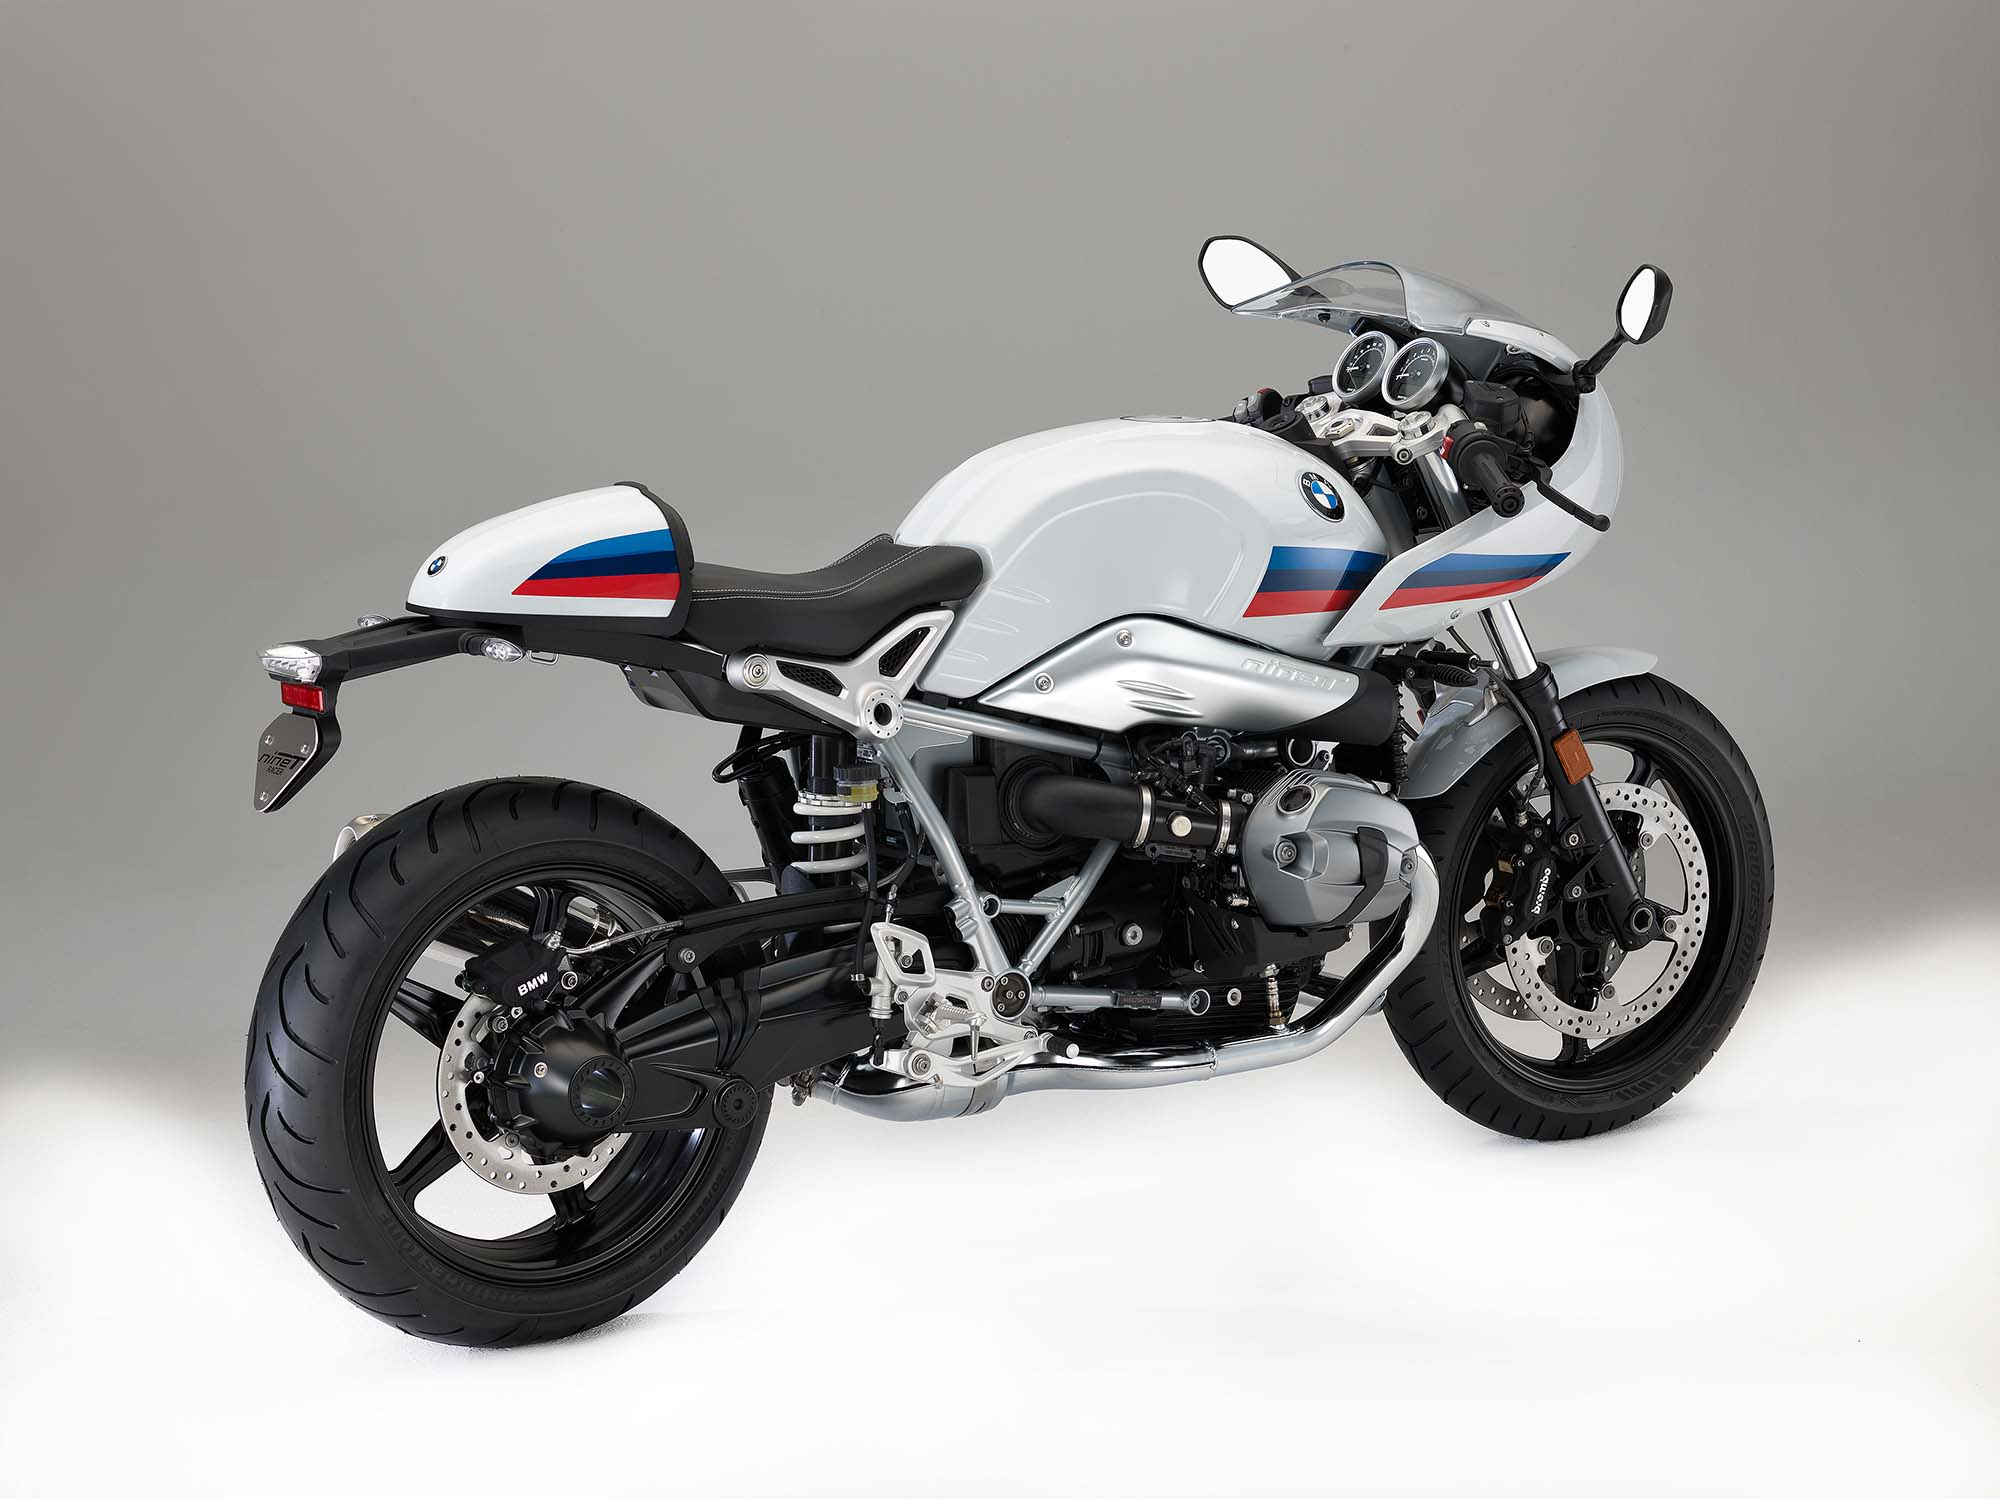 bmw r ninet racer yet another caf racer. Black Bedroom Furniture Sets. Home Design Ideas